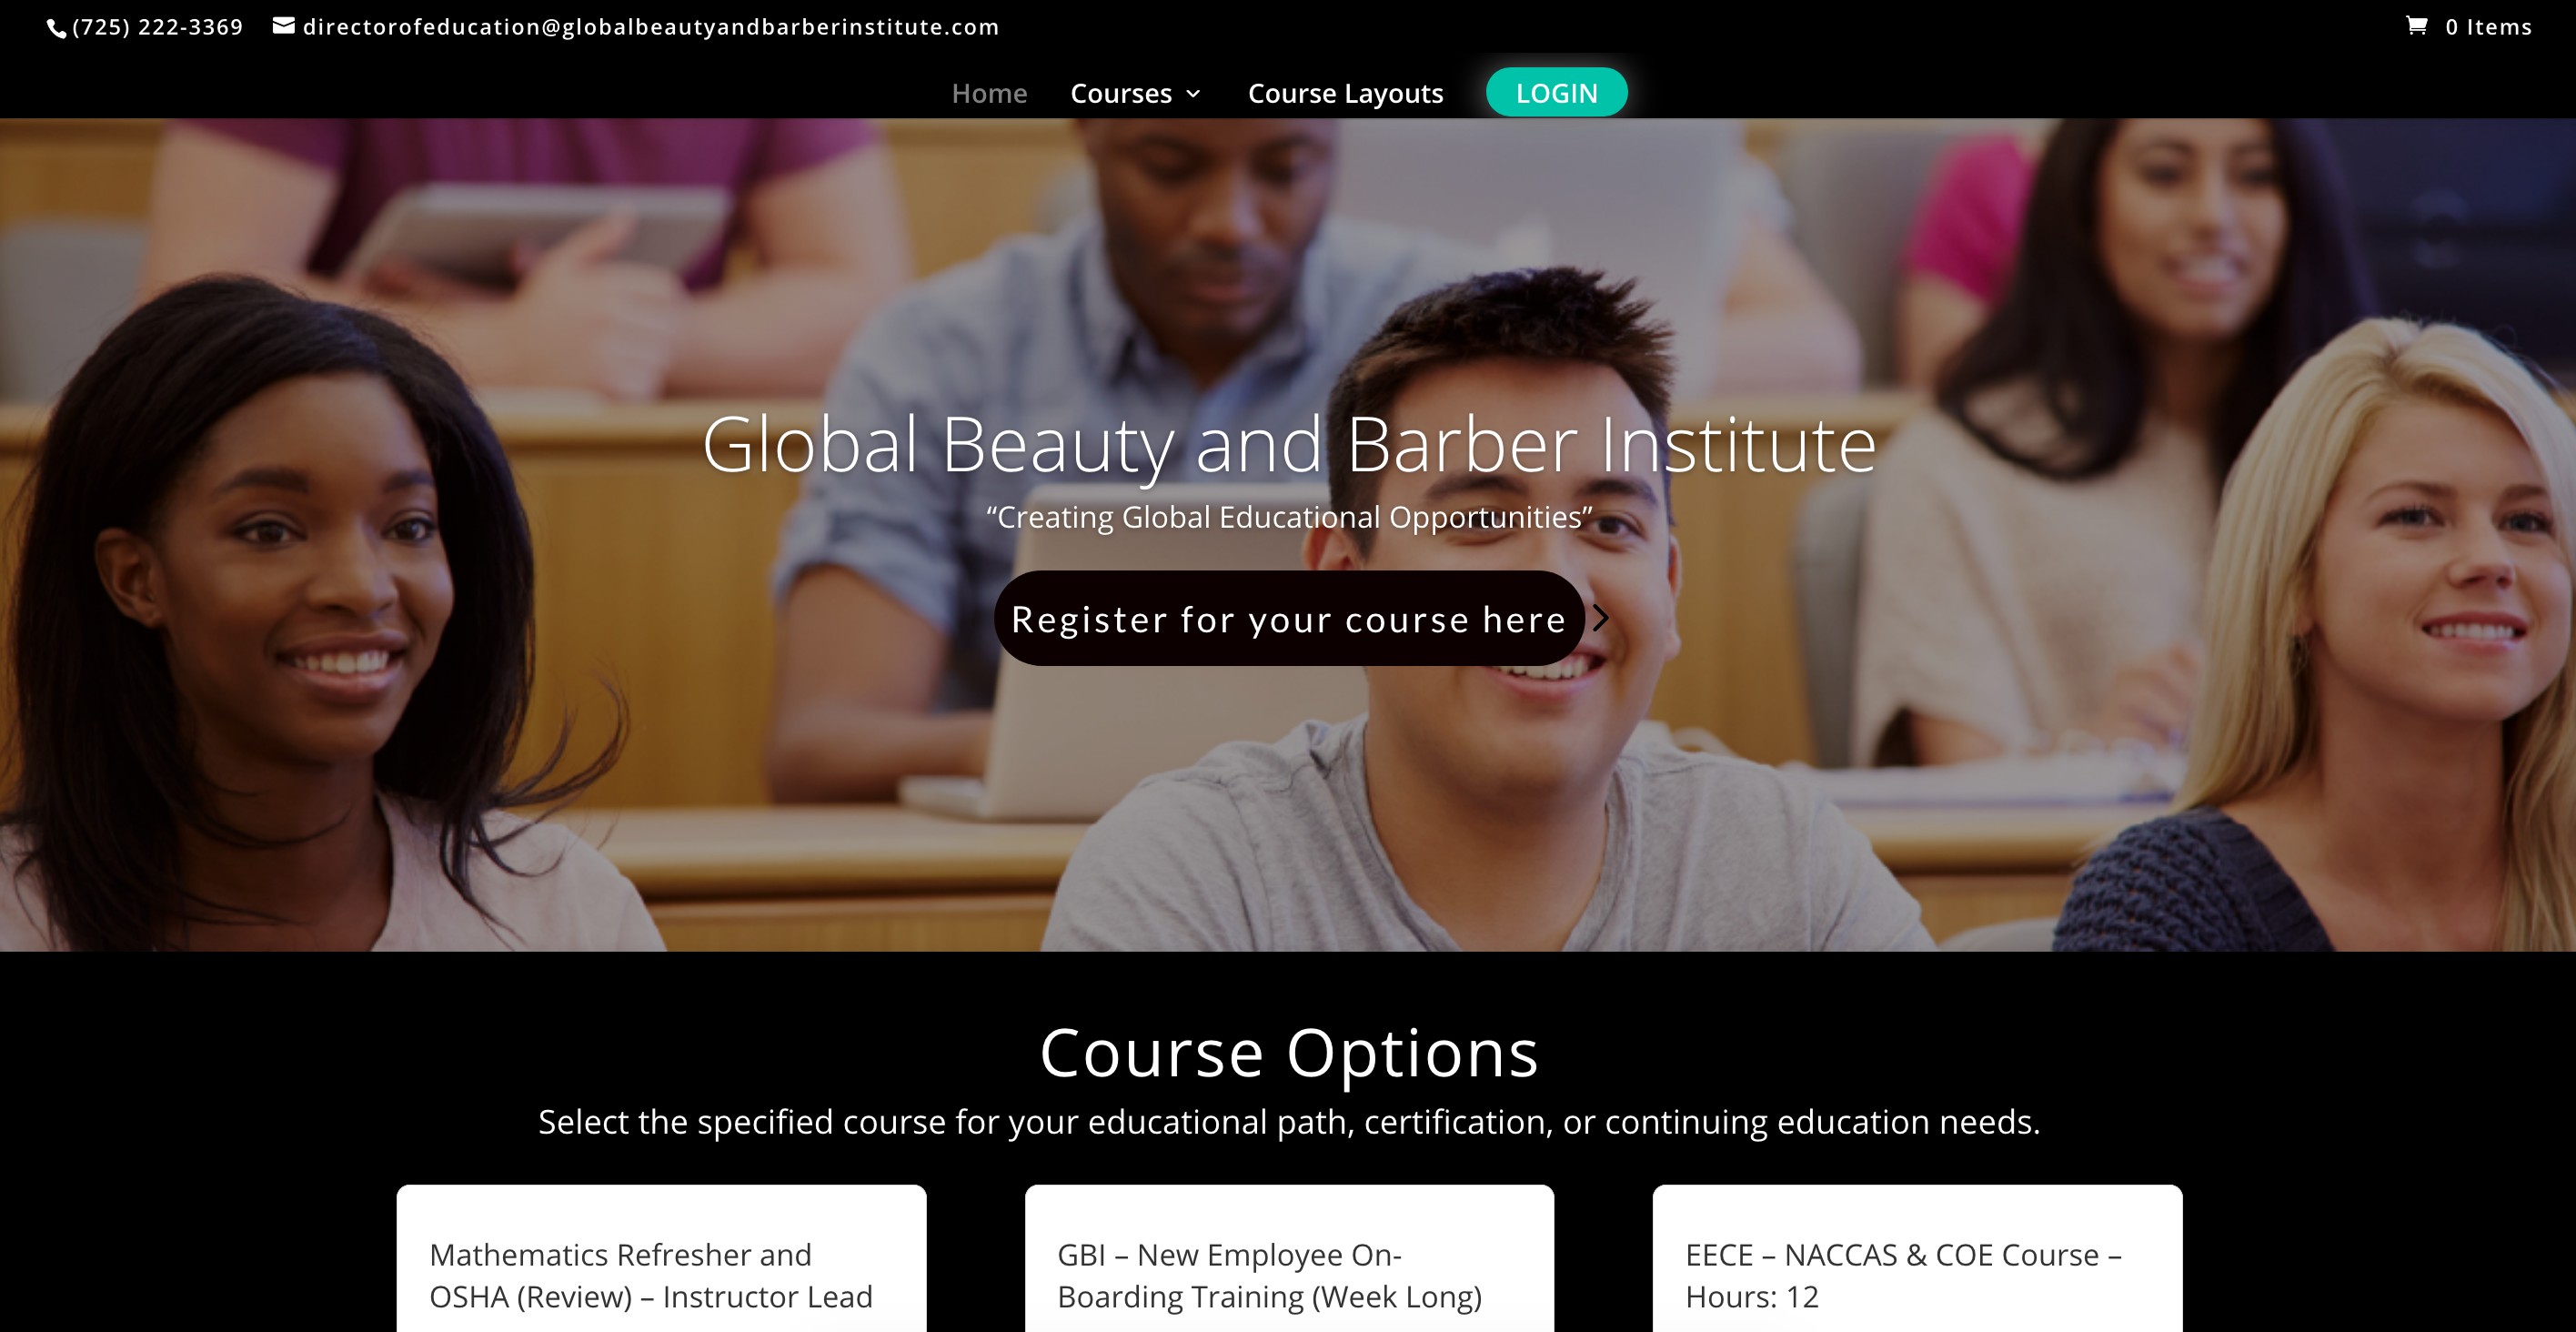 esthetic aesthetician cosmetology beauty barber training website selling online courses with LMS eLearning platform